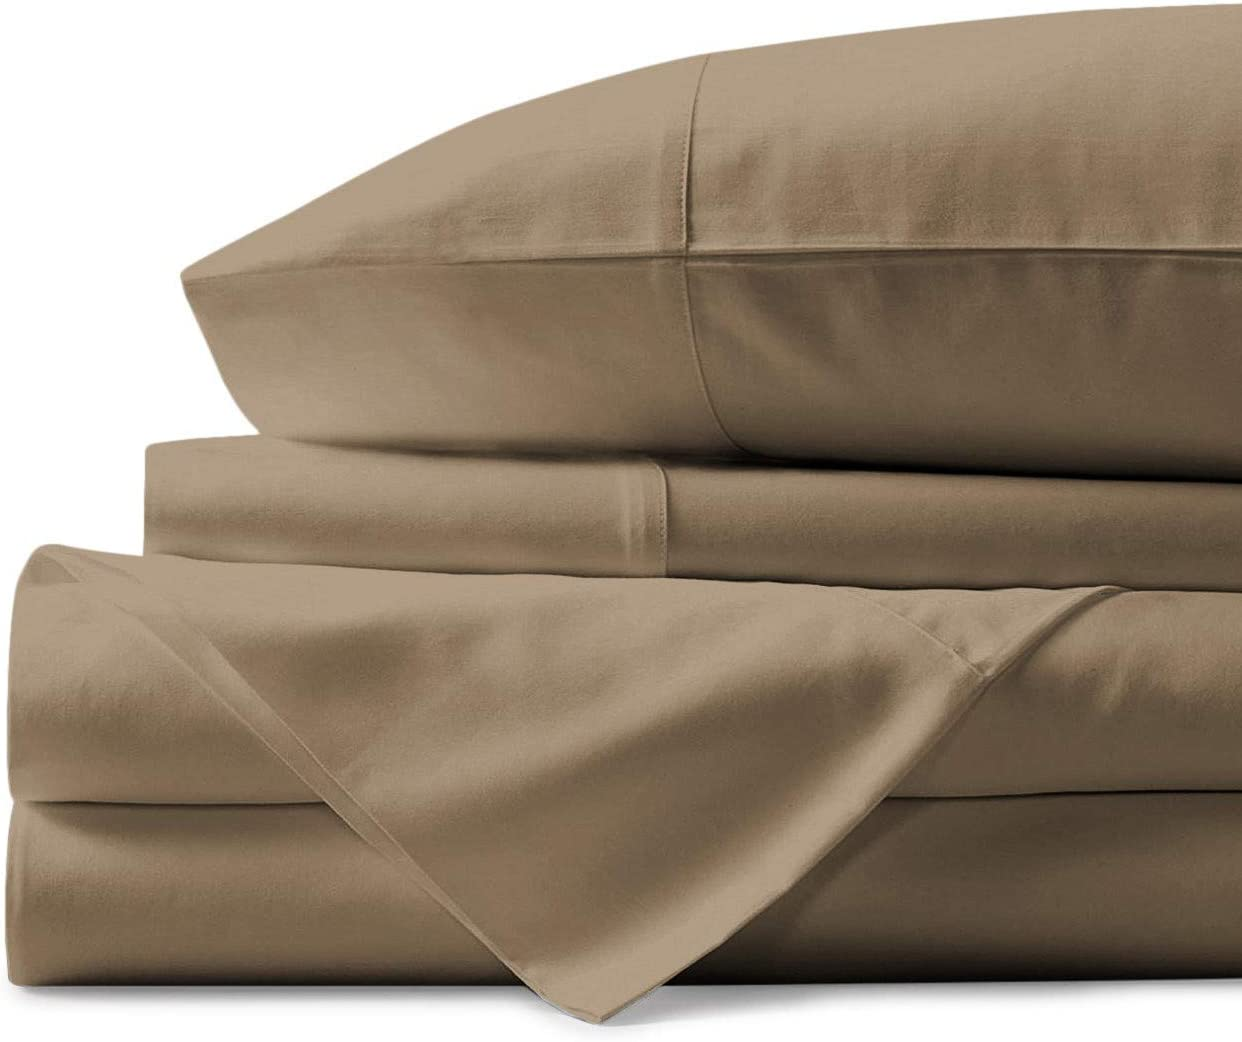 Mayfair Linen 800 Thread Count 5 ☆ NEW before selling ☆ very popular 100% Egyptian Sheets Cotton Pie 4